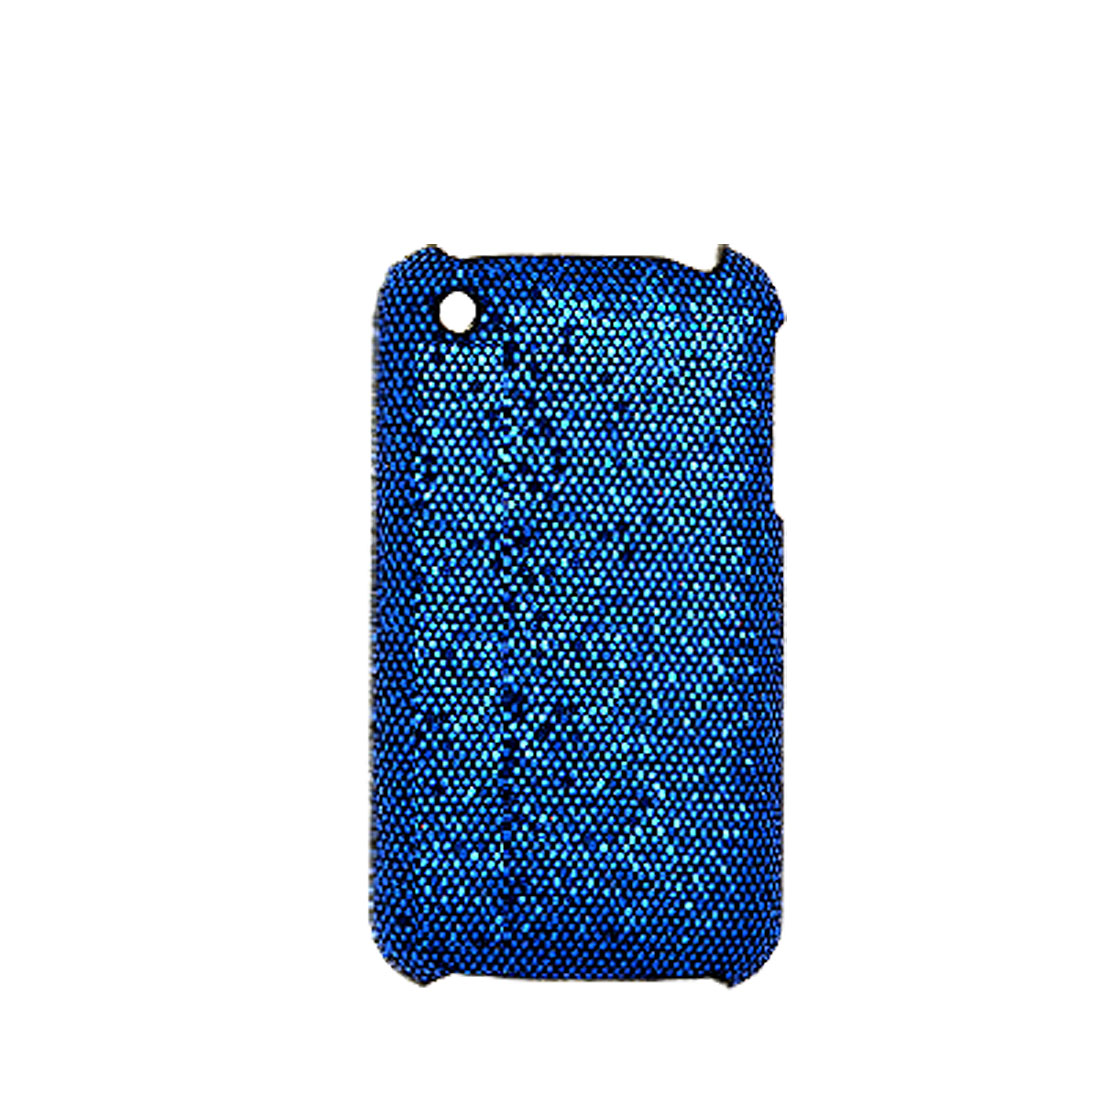 Glittery Blue Plastic Case Back Protector Cover for iPhone 3G / 3GS